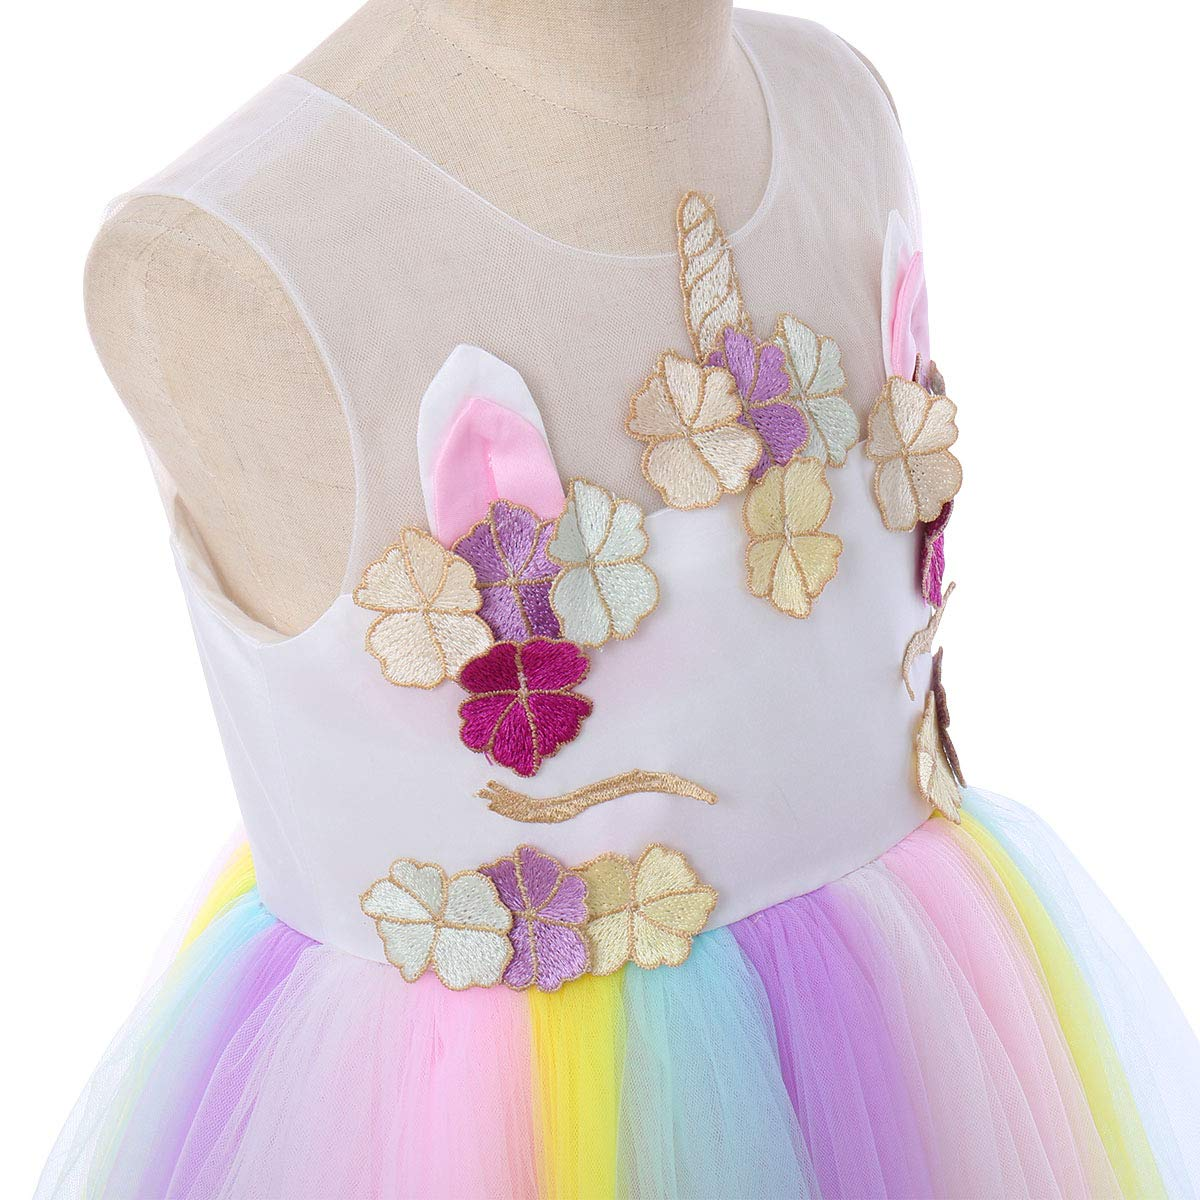 FYMNSI Kids Unicorn Dress Up Flower Girl Rainbow Tutu Tulle Skirt Sleeveless Princess Ball Gown with Horn Headband Outfit for Birthday Party Pageant Wedding Christmas Carnival Photo Shoot